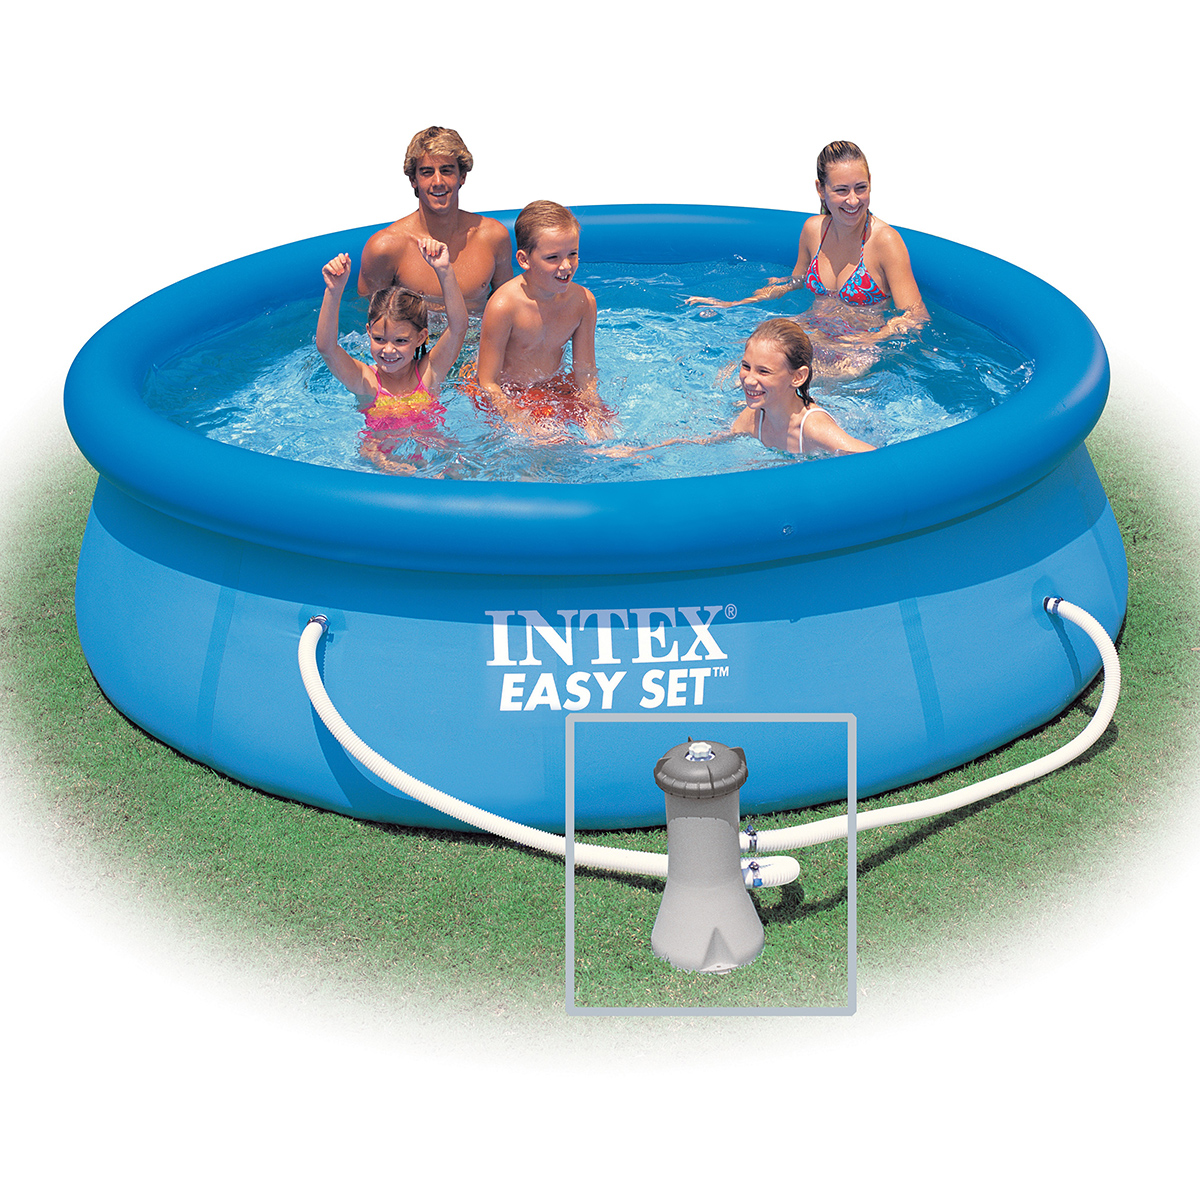 Intex 28122fr piscine hors sol autoportante ronde pvc for Piscine hors sol intex autoportante